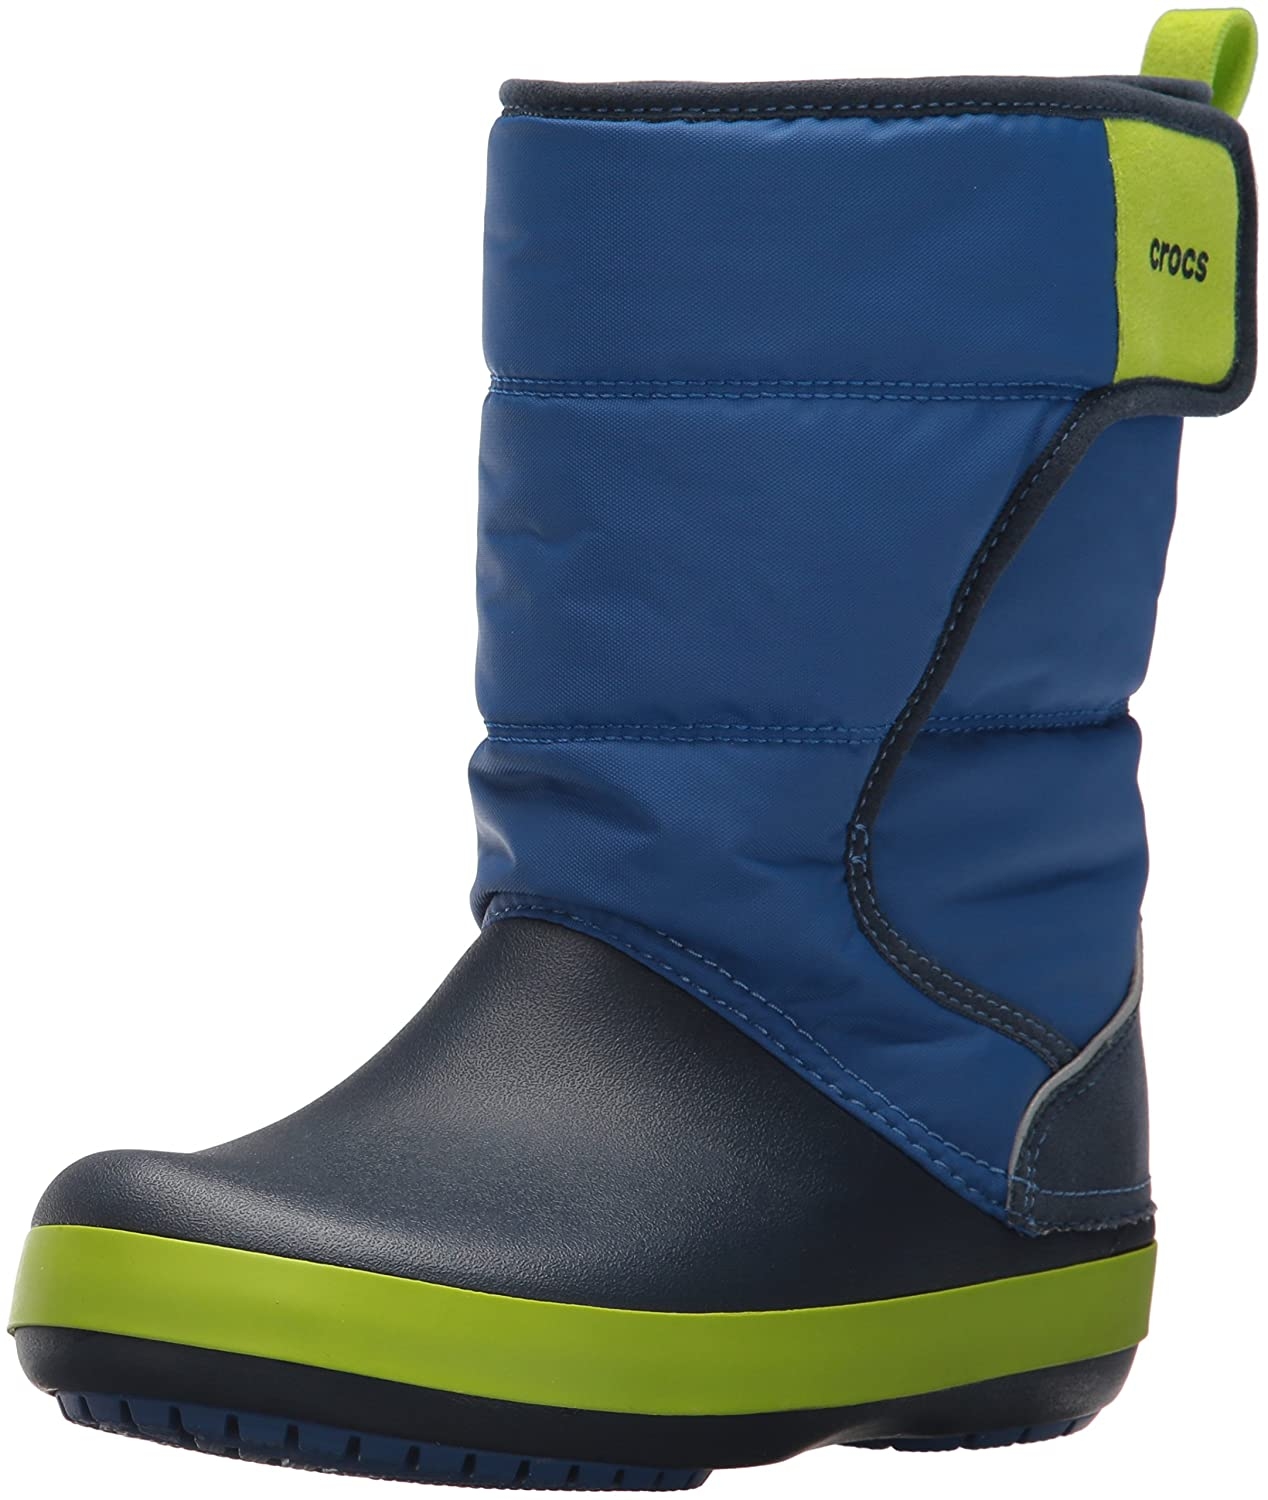 Crocs Kids' Boys & Girls LodgePoint Snow Boot